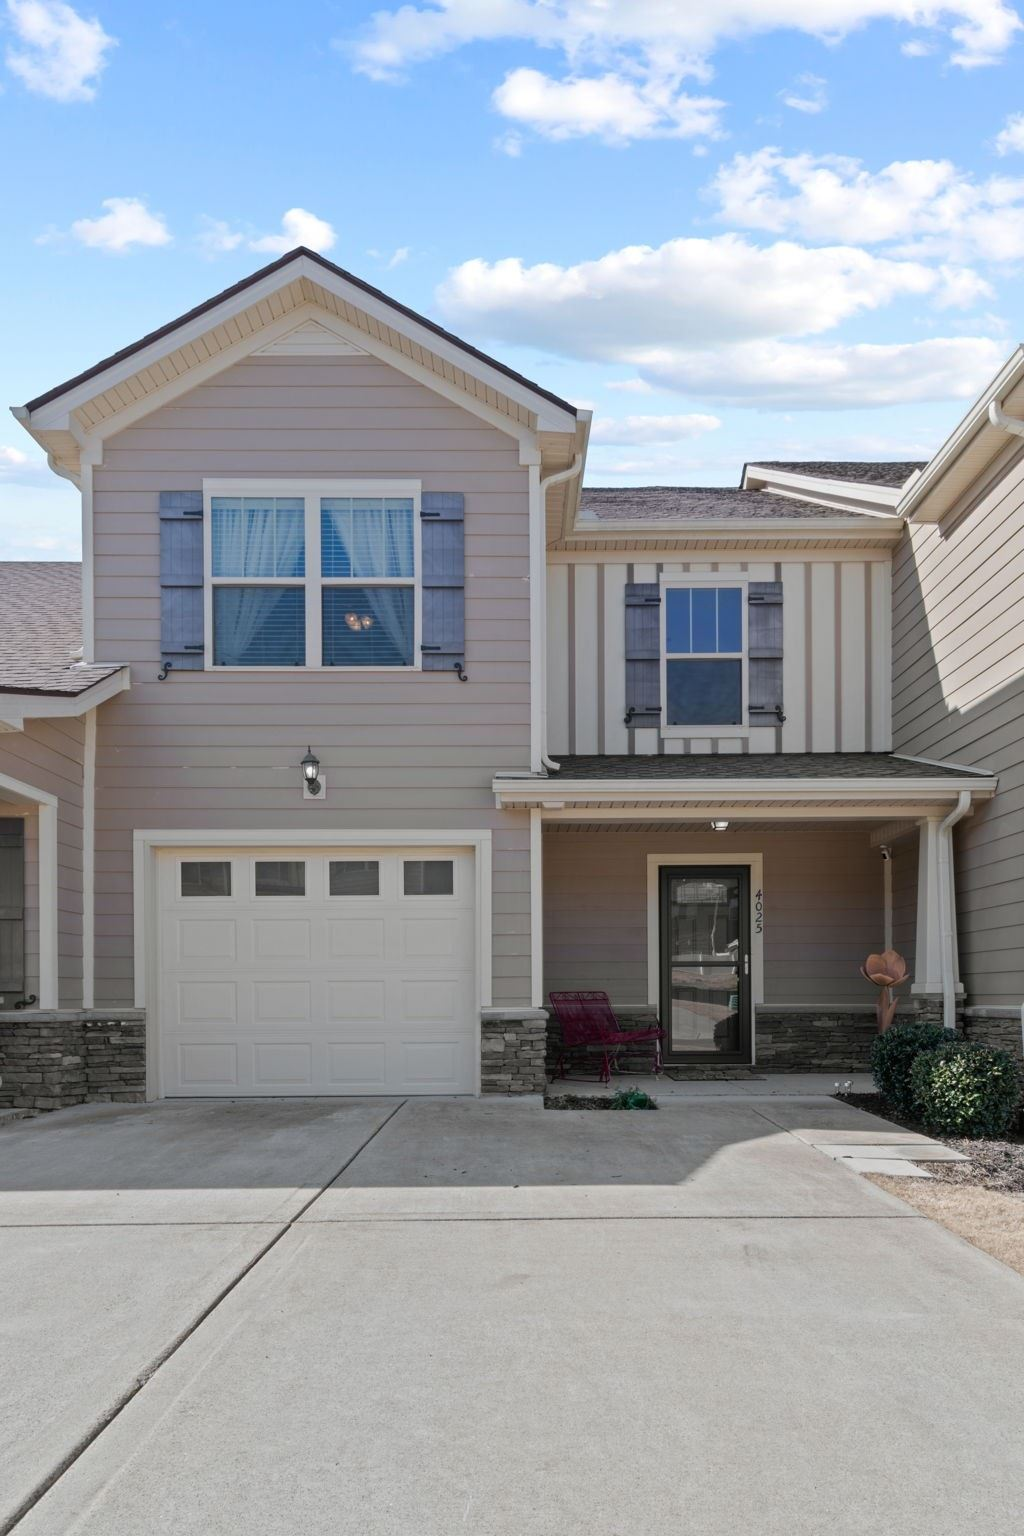 Photo of 4025 Commons Dr, Spring Hill, TN 37174 (MLS # 2222056)